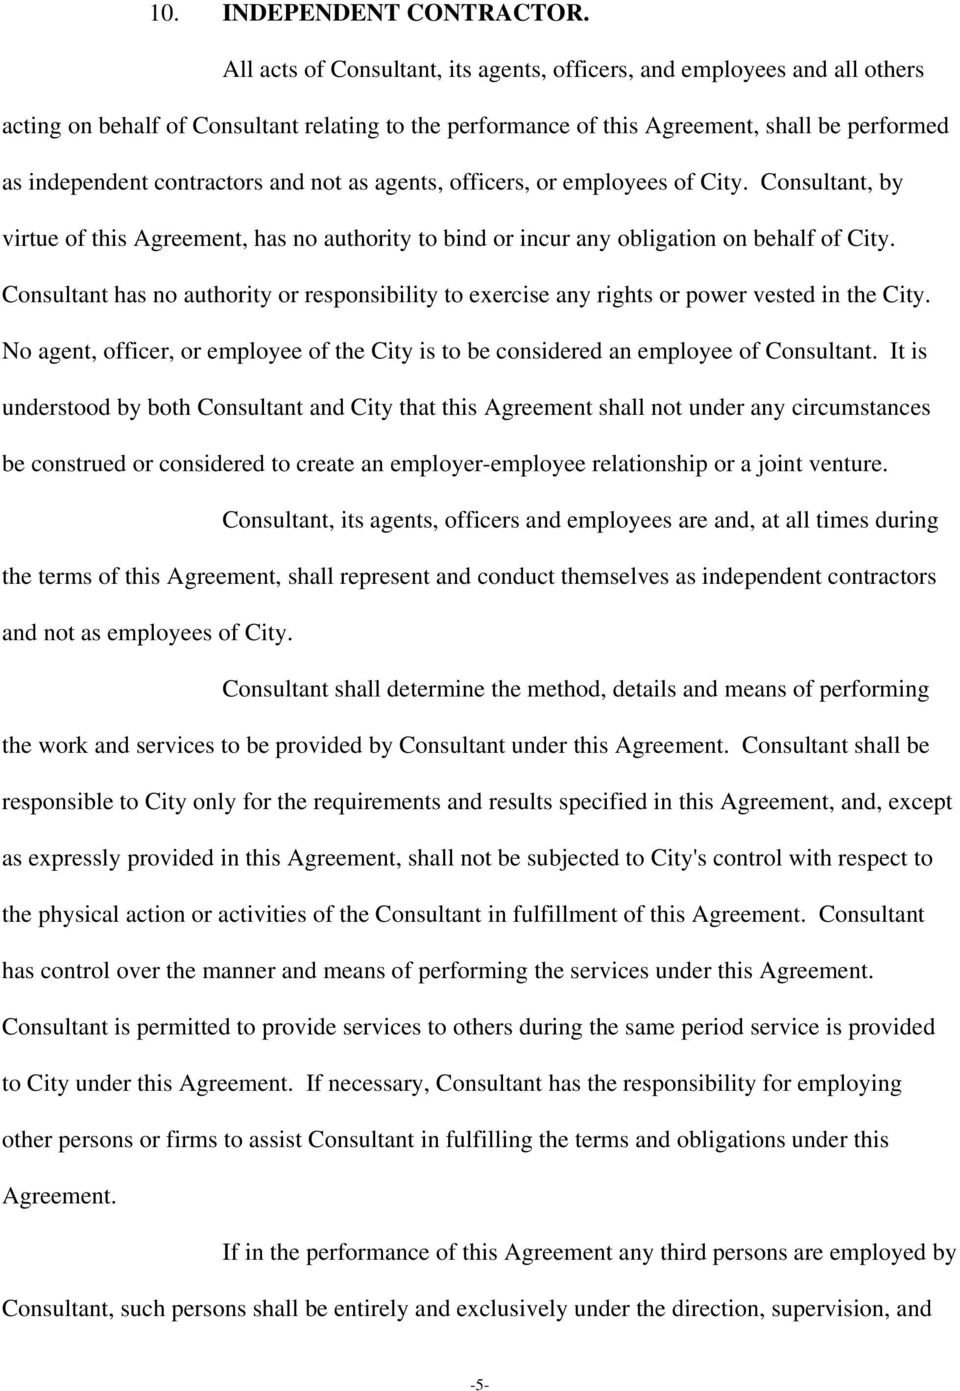 and not as agents, officers, or employees of City. Consultant, by virtue of this Agreement, has no authority to bind or incur any obligation on behalf of City.